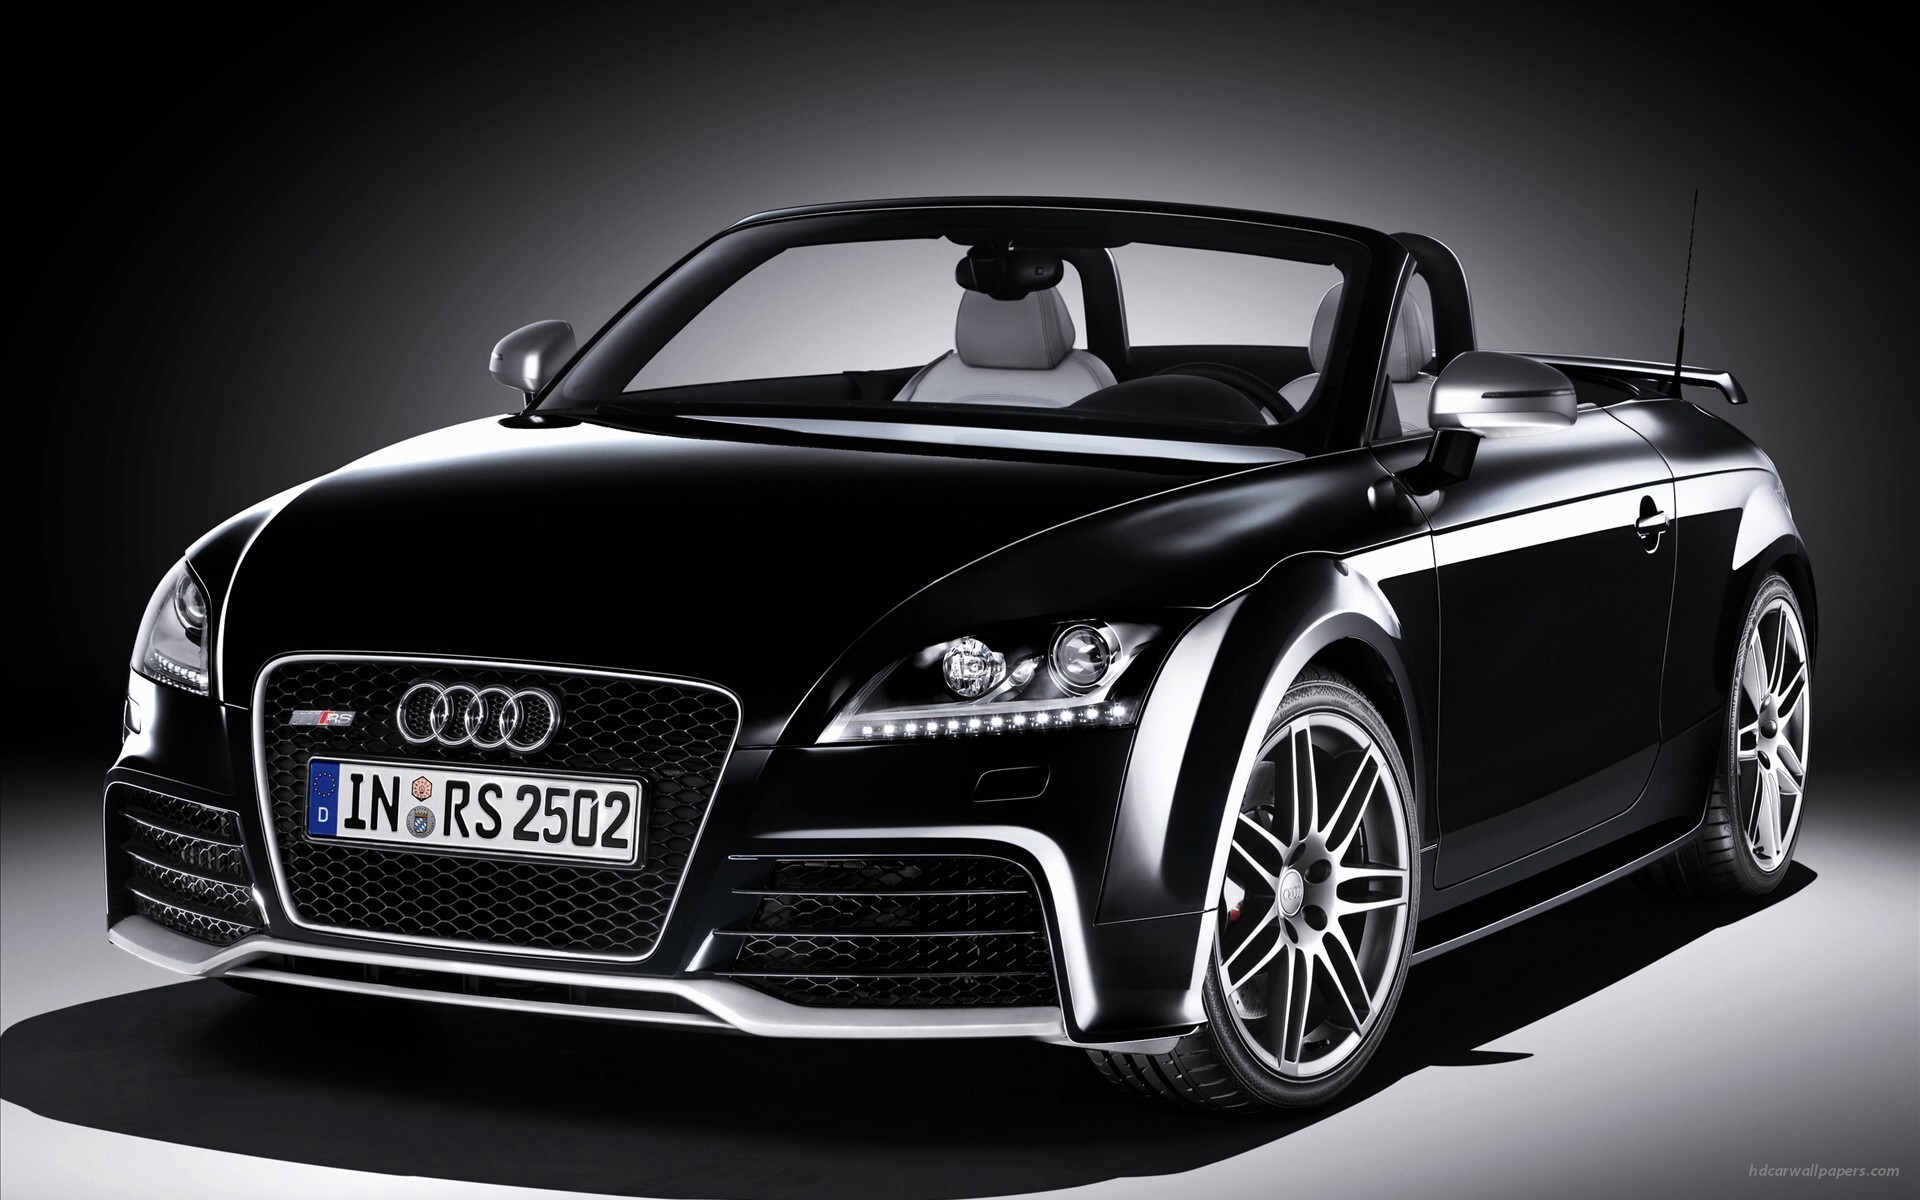 Black Audi Tt Rs Roadster 5 Car Wallpapers Hd Wallpapers